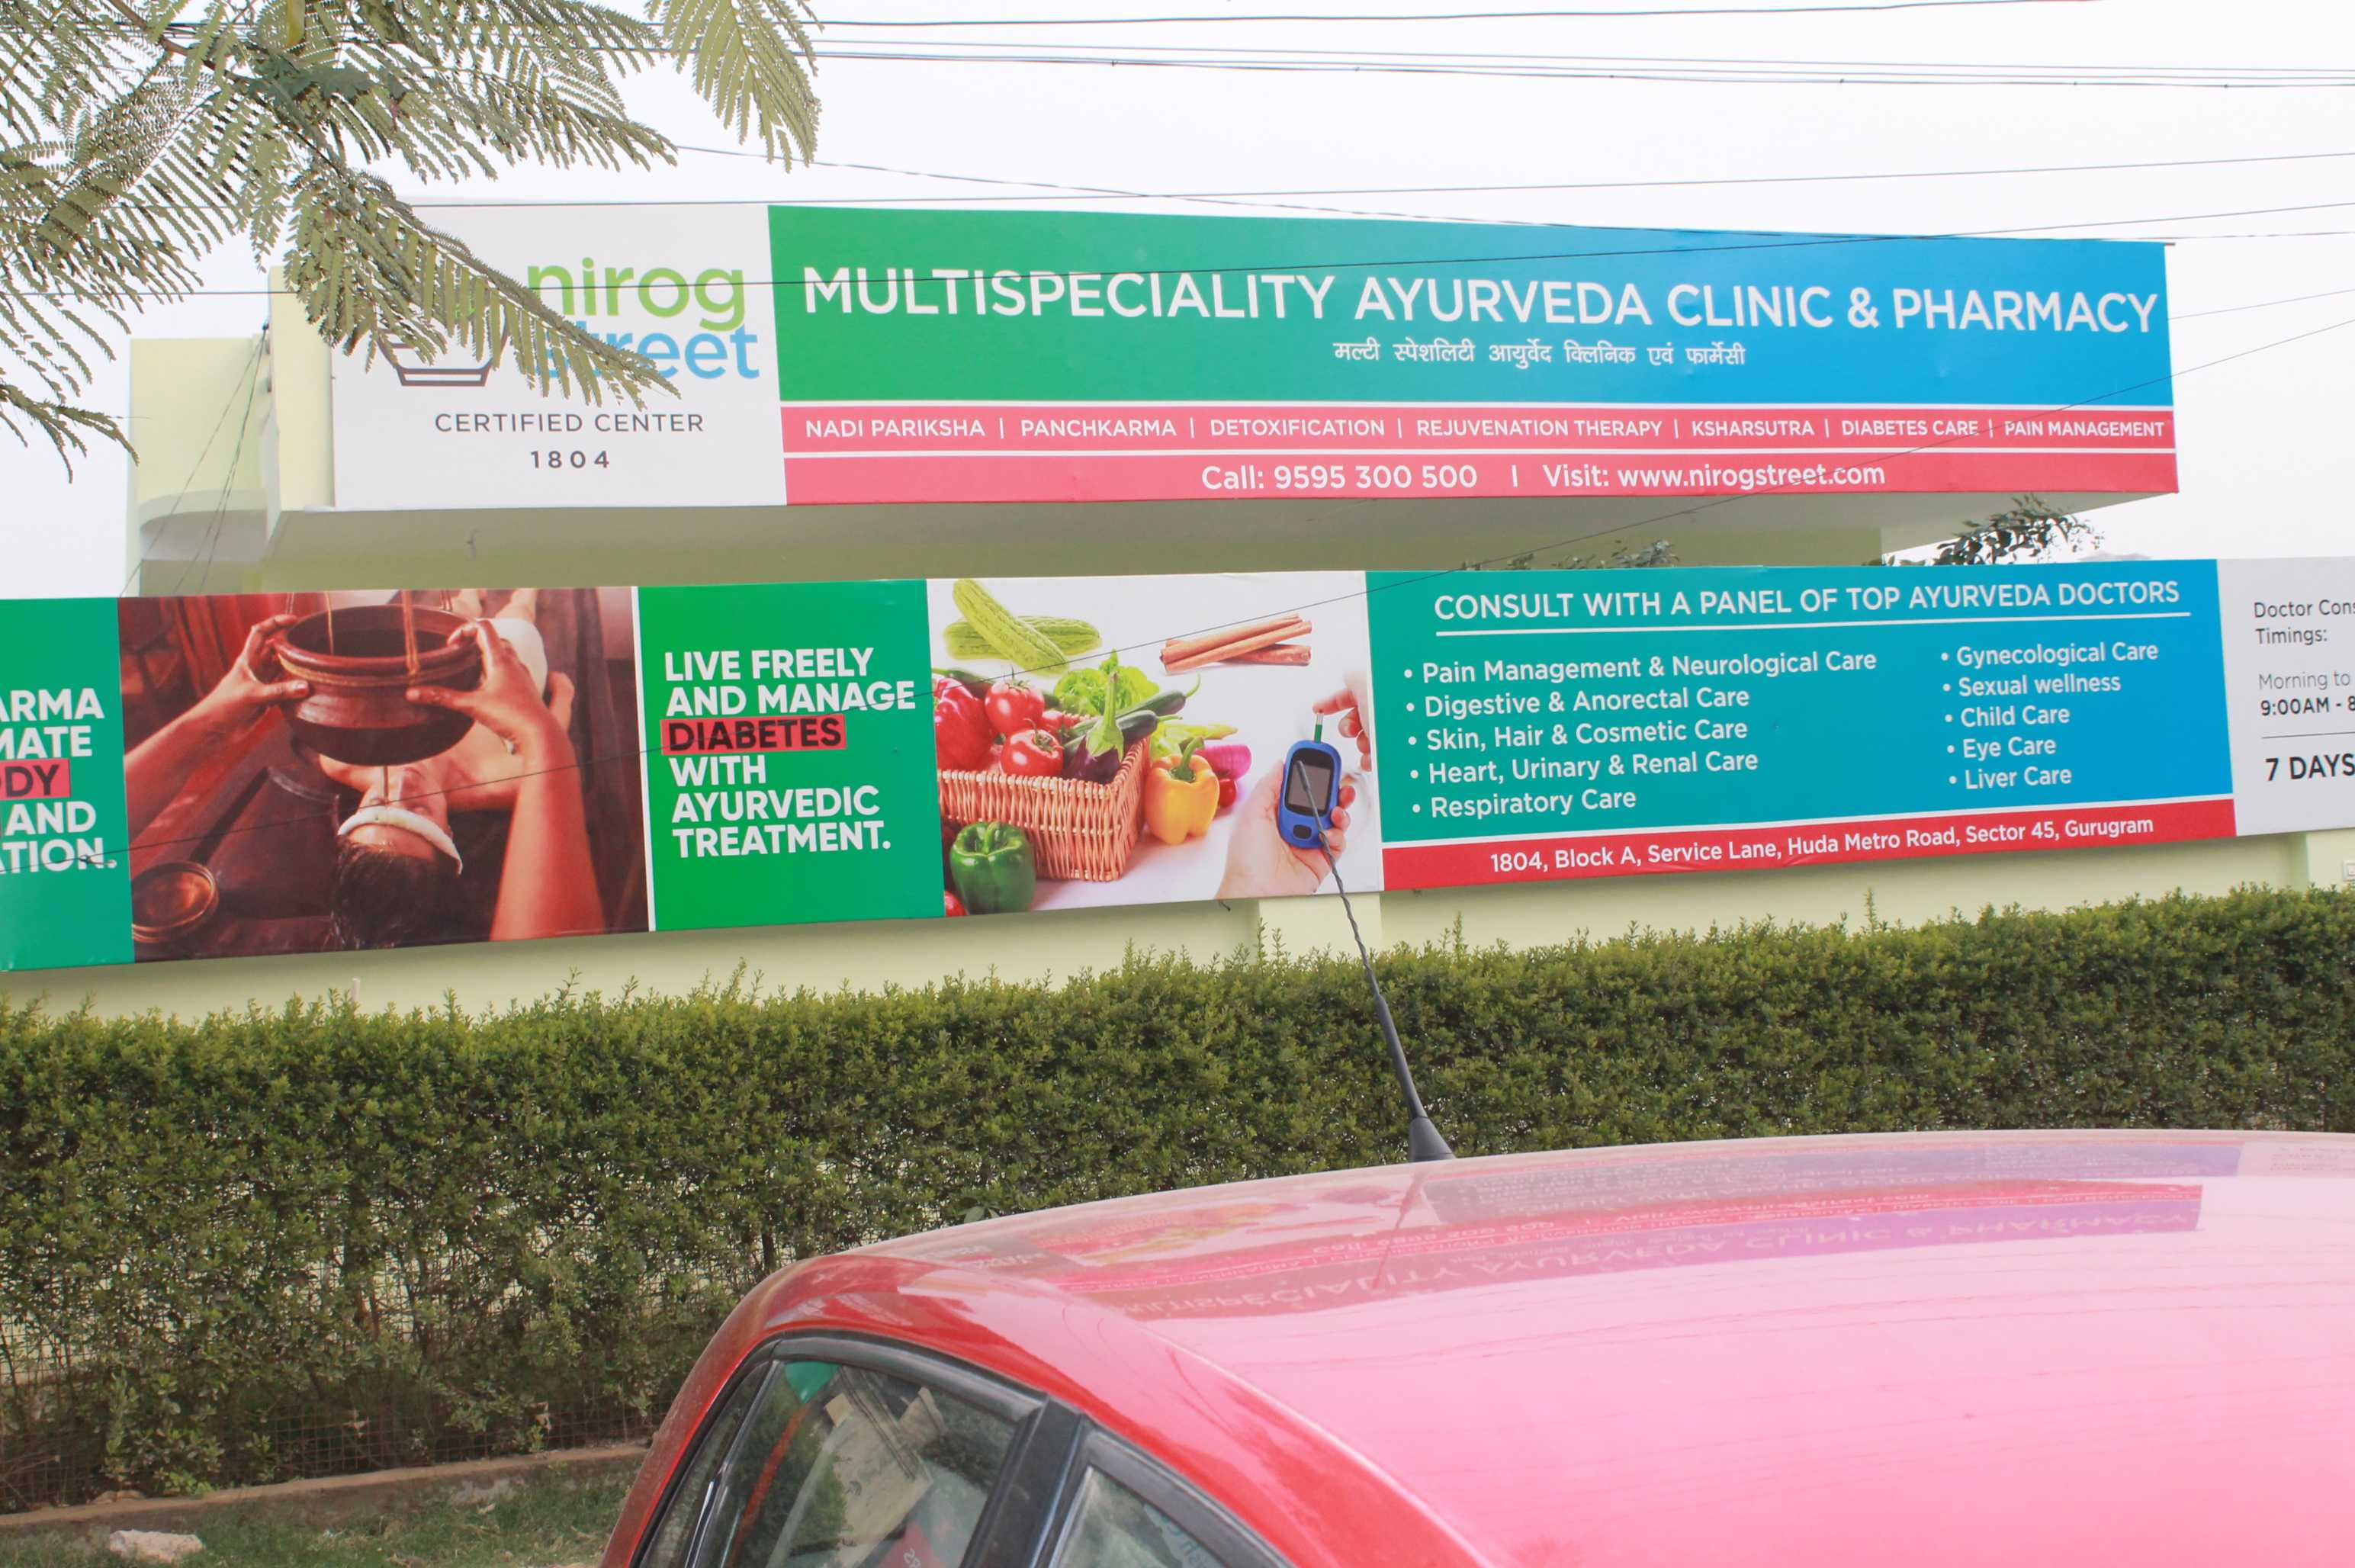 nirogstreet certified multi speciality ayurveda clinic and pharmacy